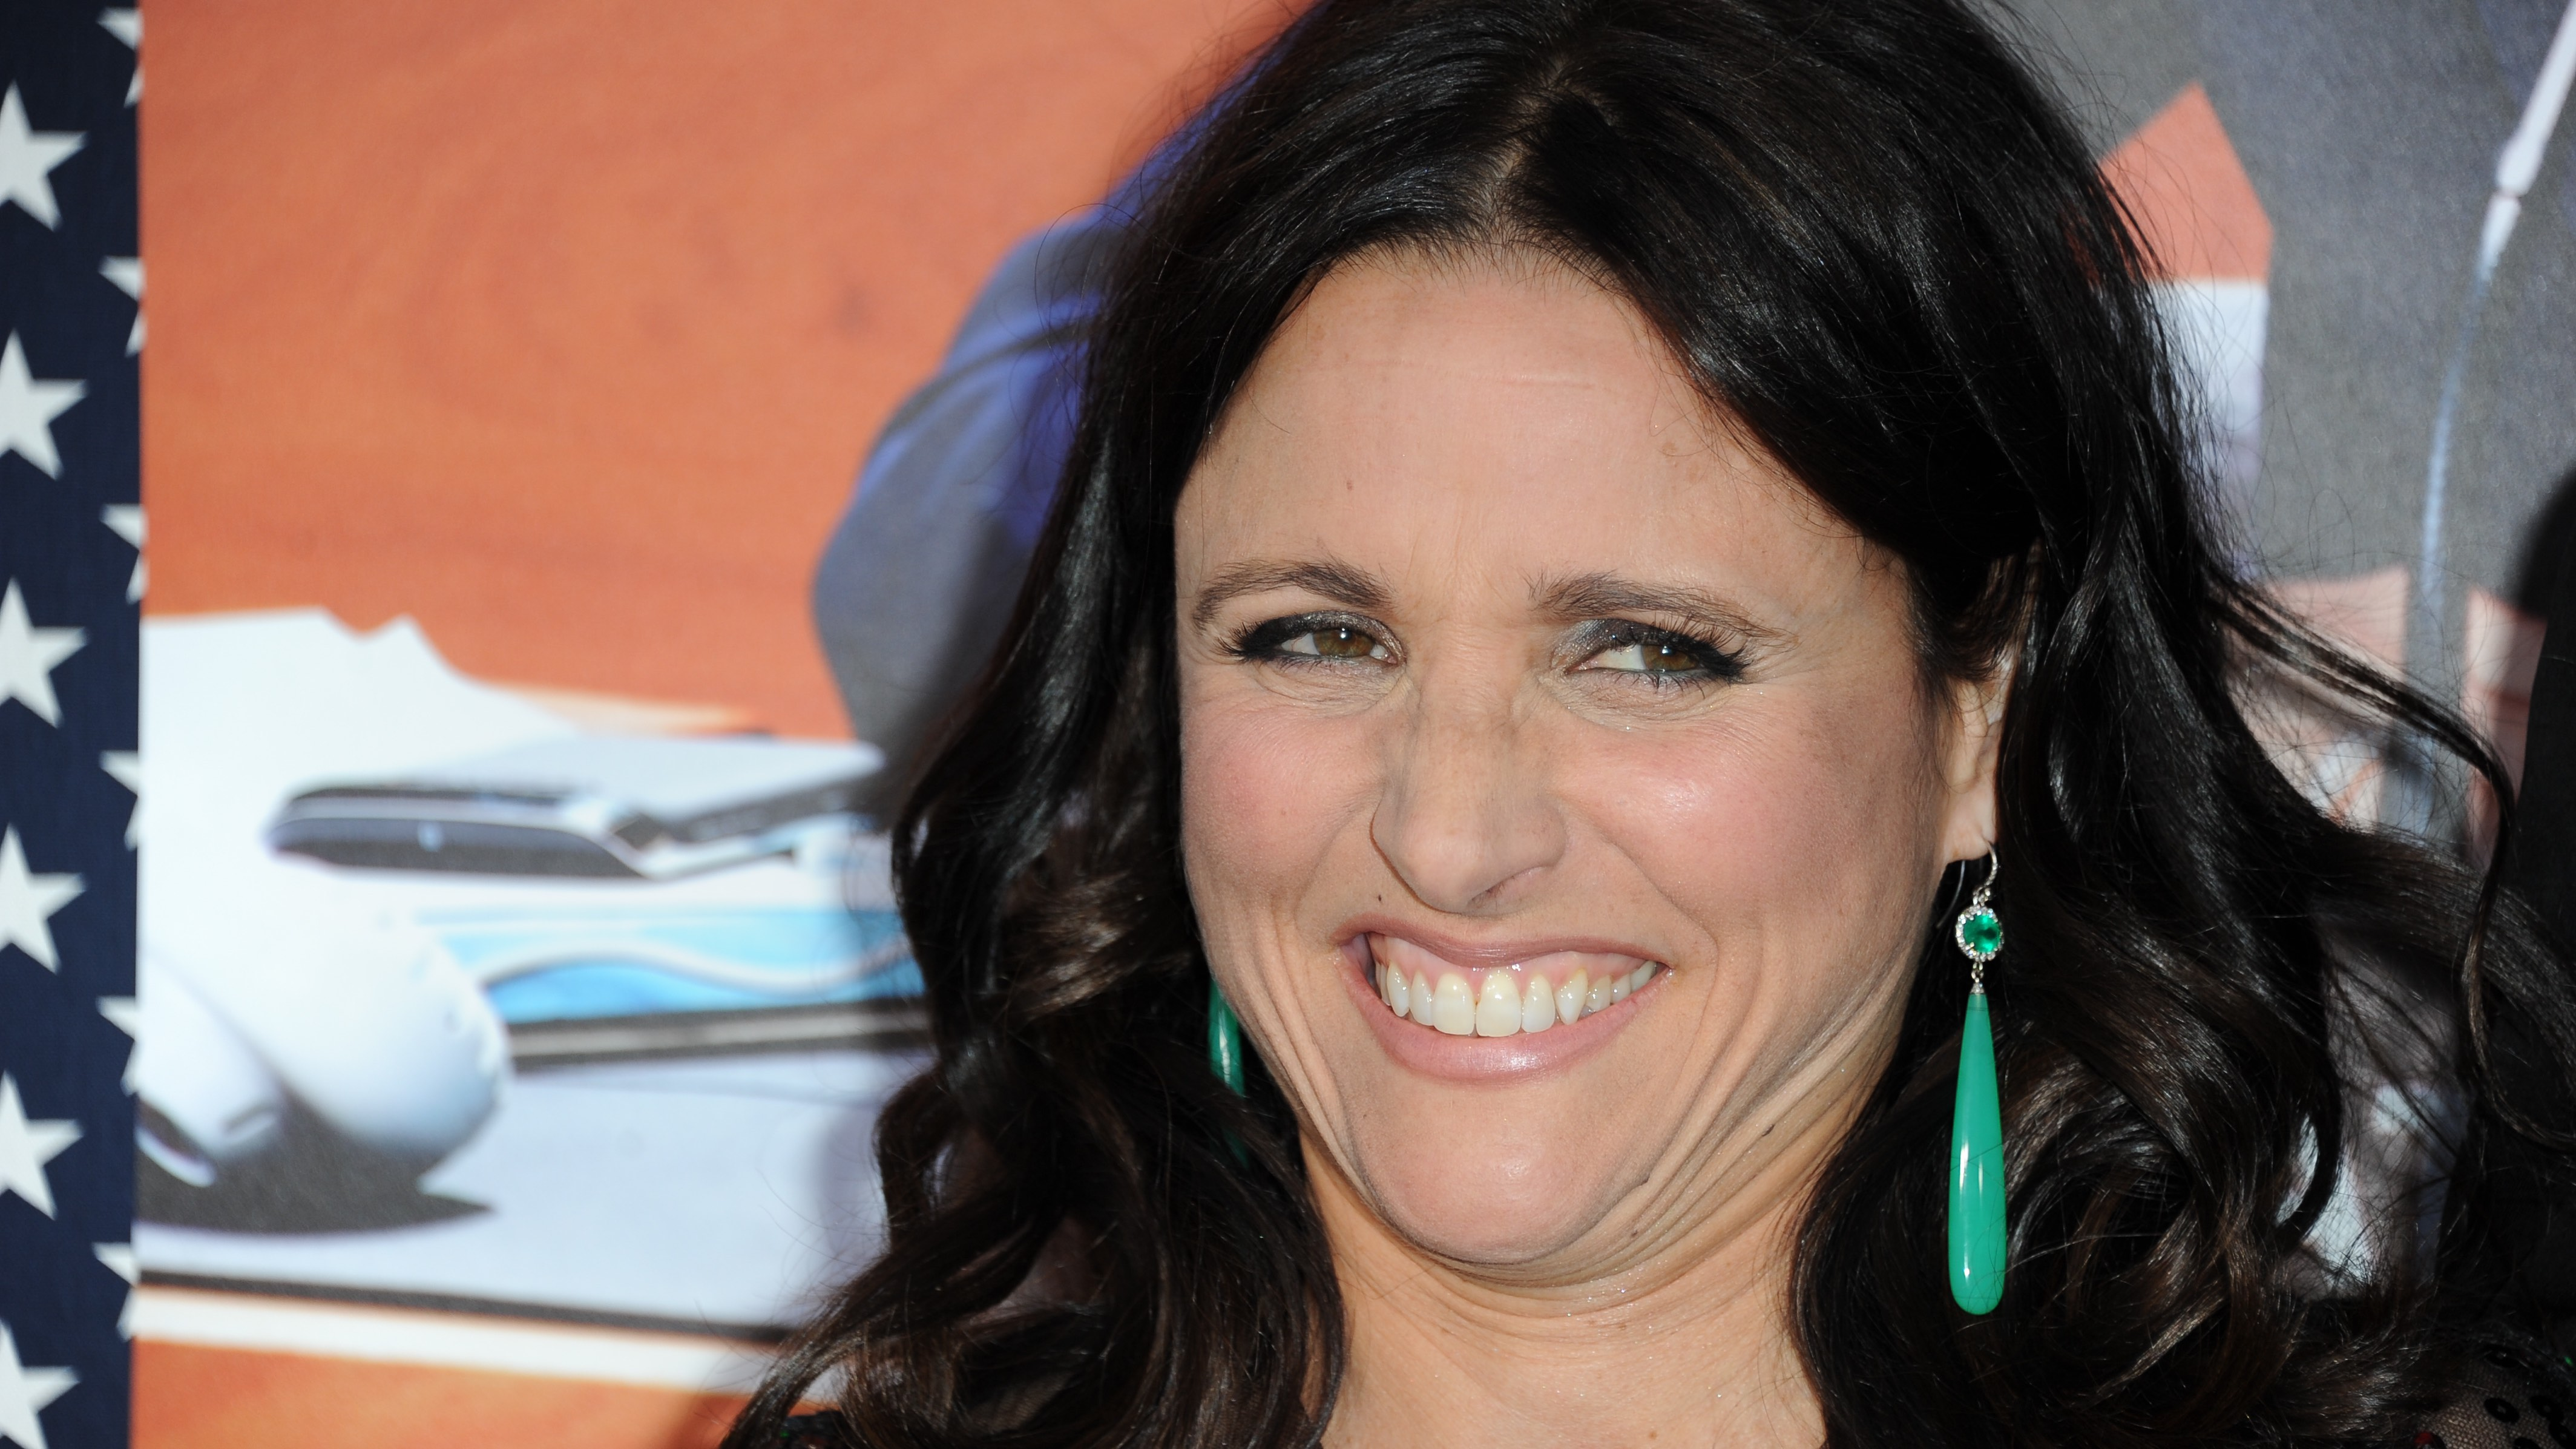 """Julia Louis-Dreyfus arrives at the LA premiere of the 2nd season of """"VEEP"""" at Paramount Studios on Tuesday, April 9, 2013 in Los Angeles. (Photo by Richard Shotwell/Invision/AP)"""